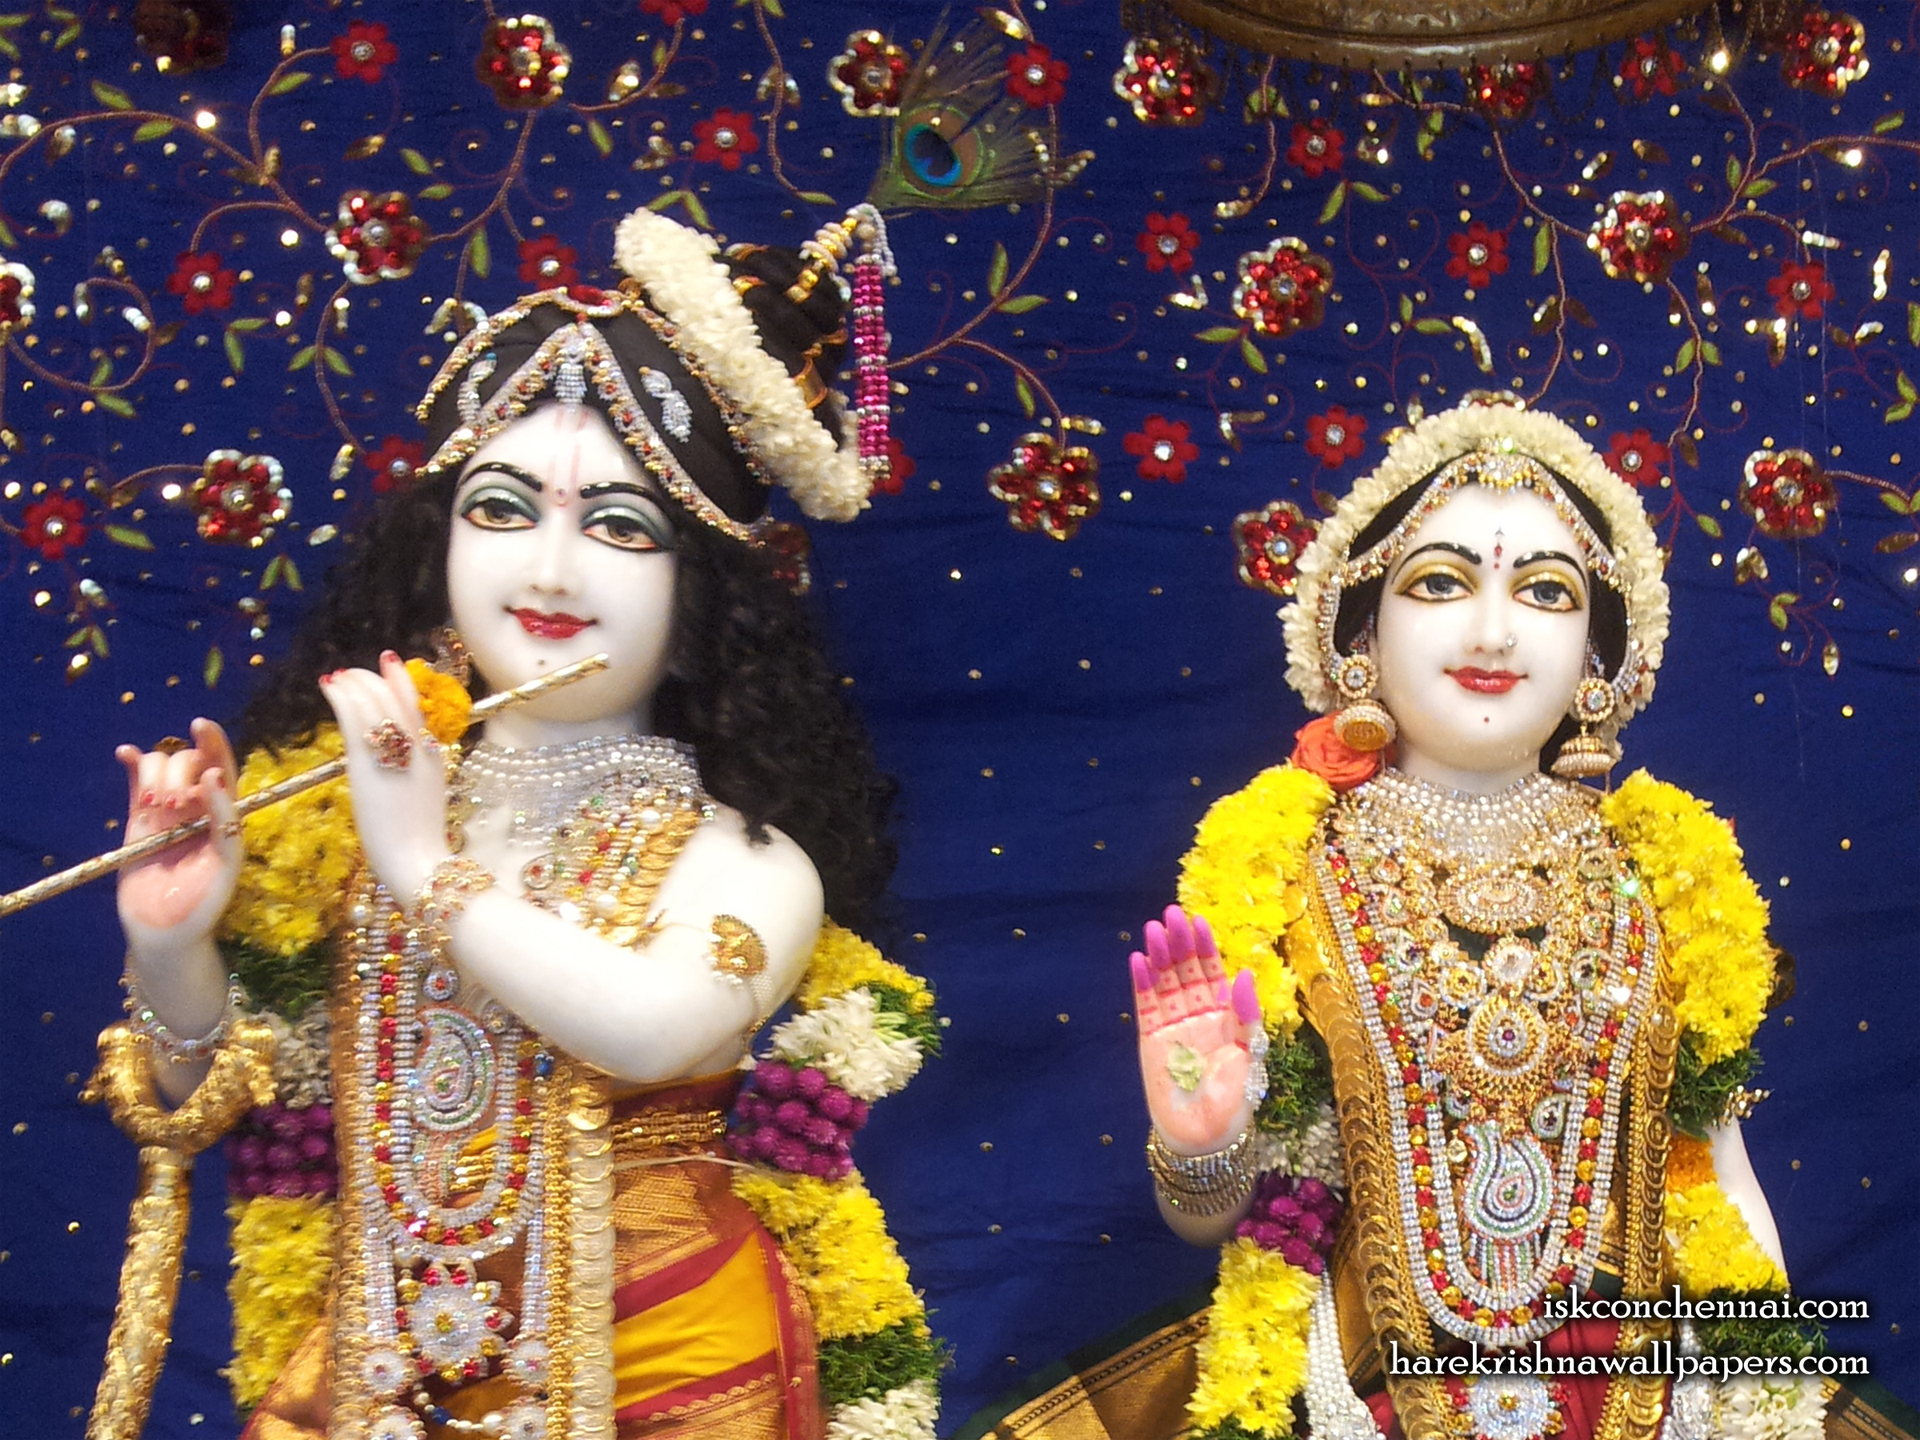 Sri Sri Radha Krishna Close up Wallpaper (002) Size 1920x1440 Download